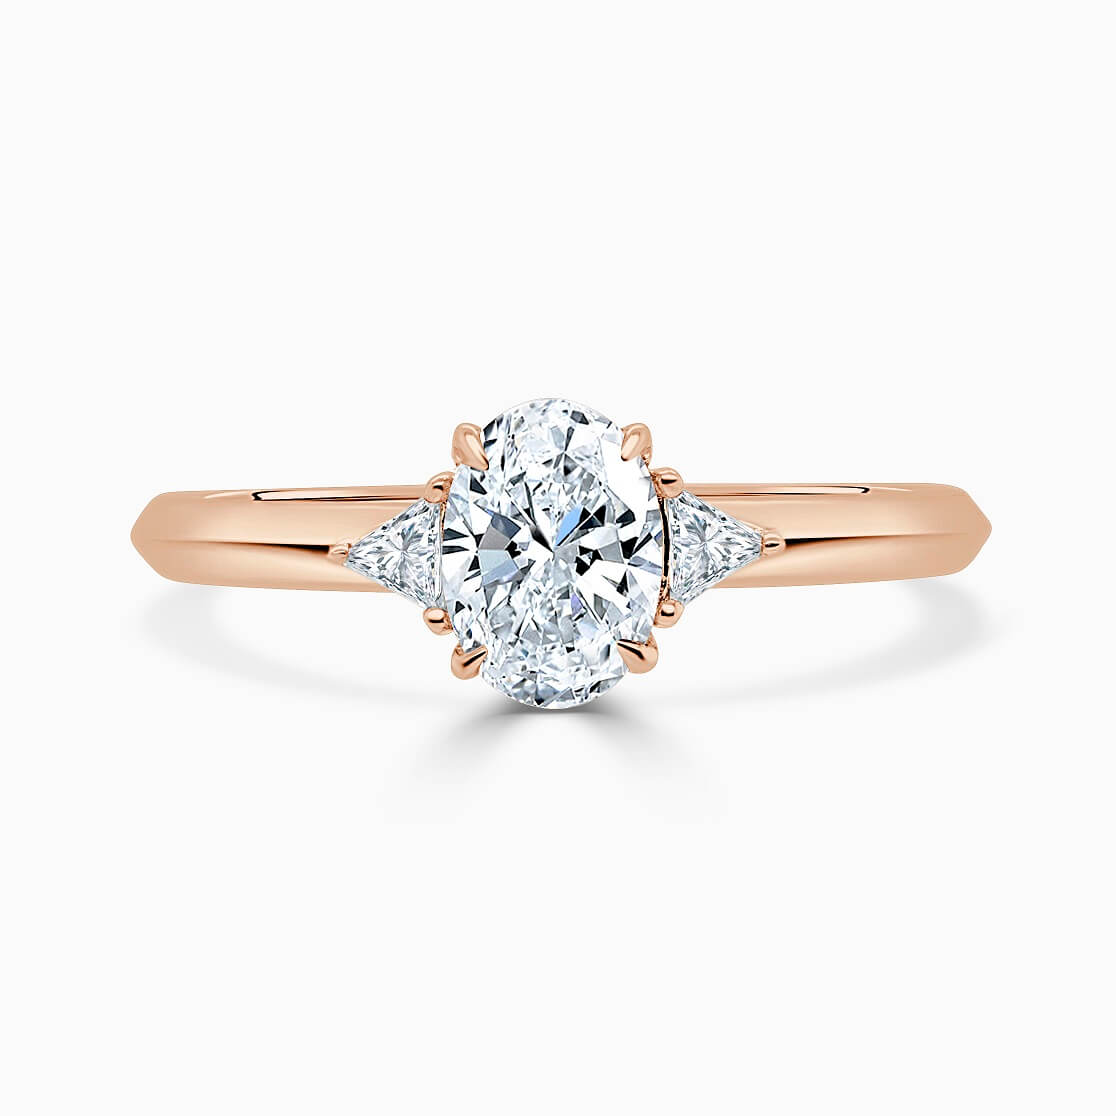 18ct Rose Gold Oval Shape 3 Stone With Trillions Engagement Ring